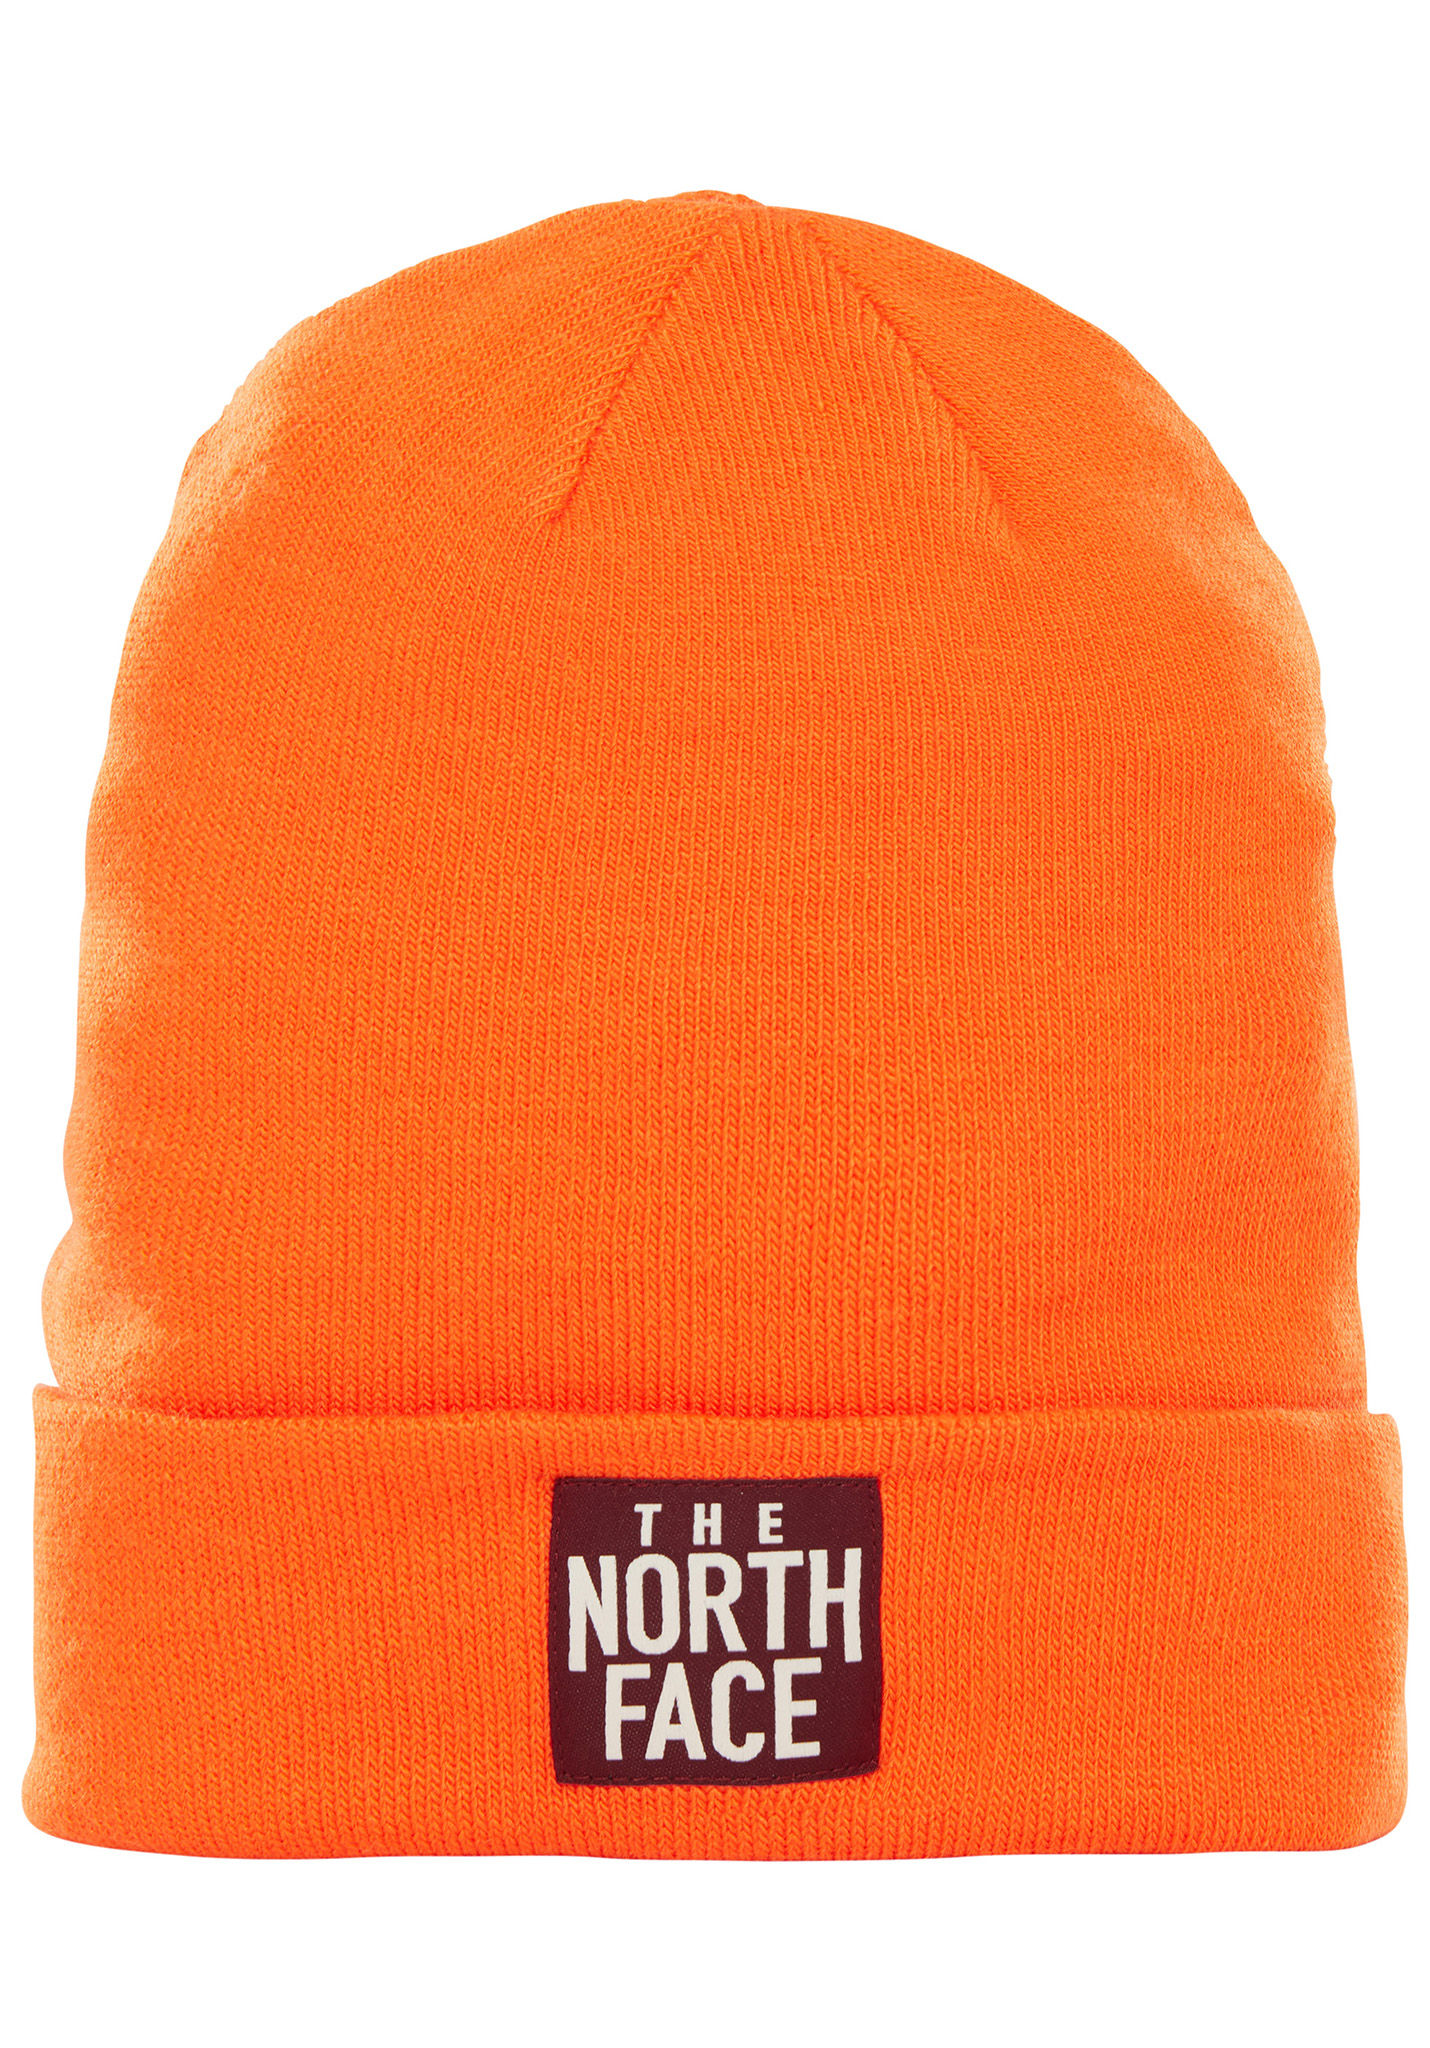 ab7479b9b THE NORTH FACE Dock Worker - Beanie - Orange